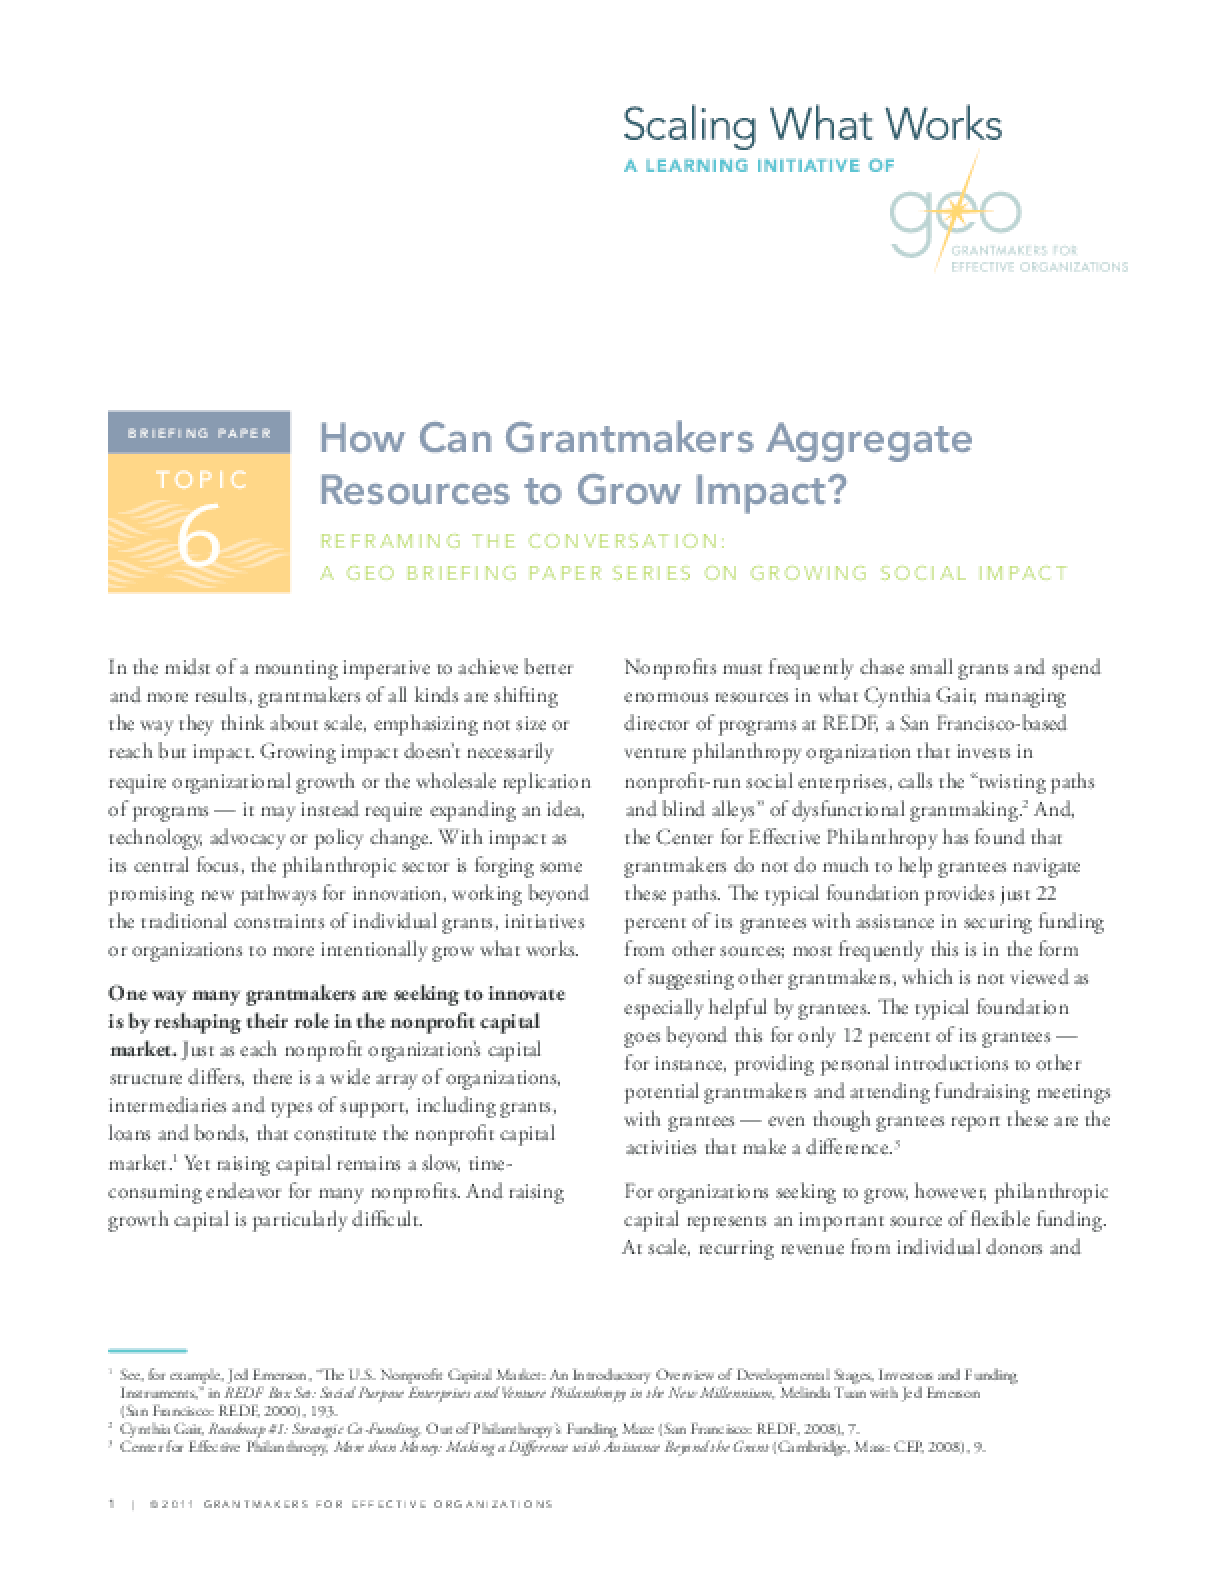 Reframing the Conversation: How Can Grantmakers Aggregate Resources to Grow Impact?